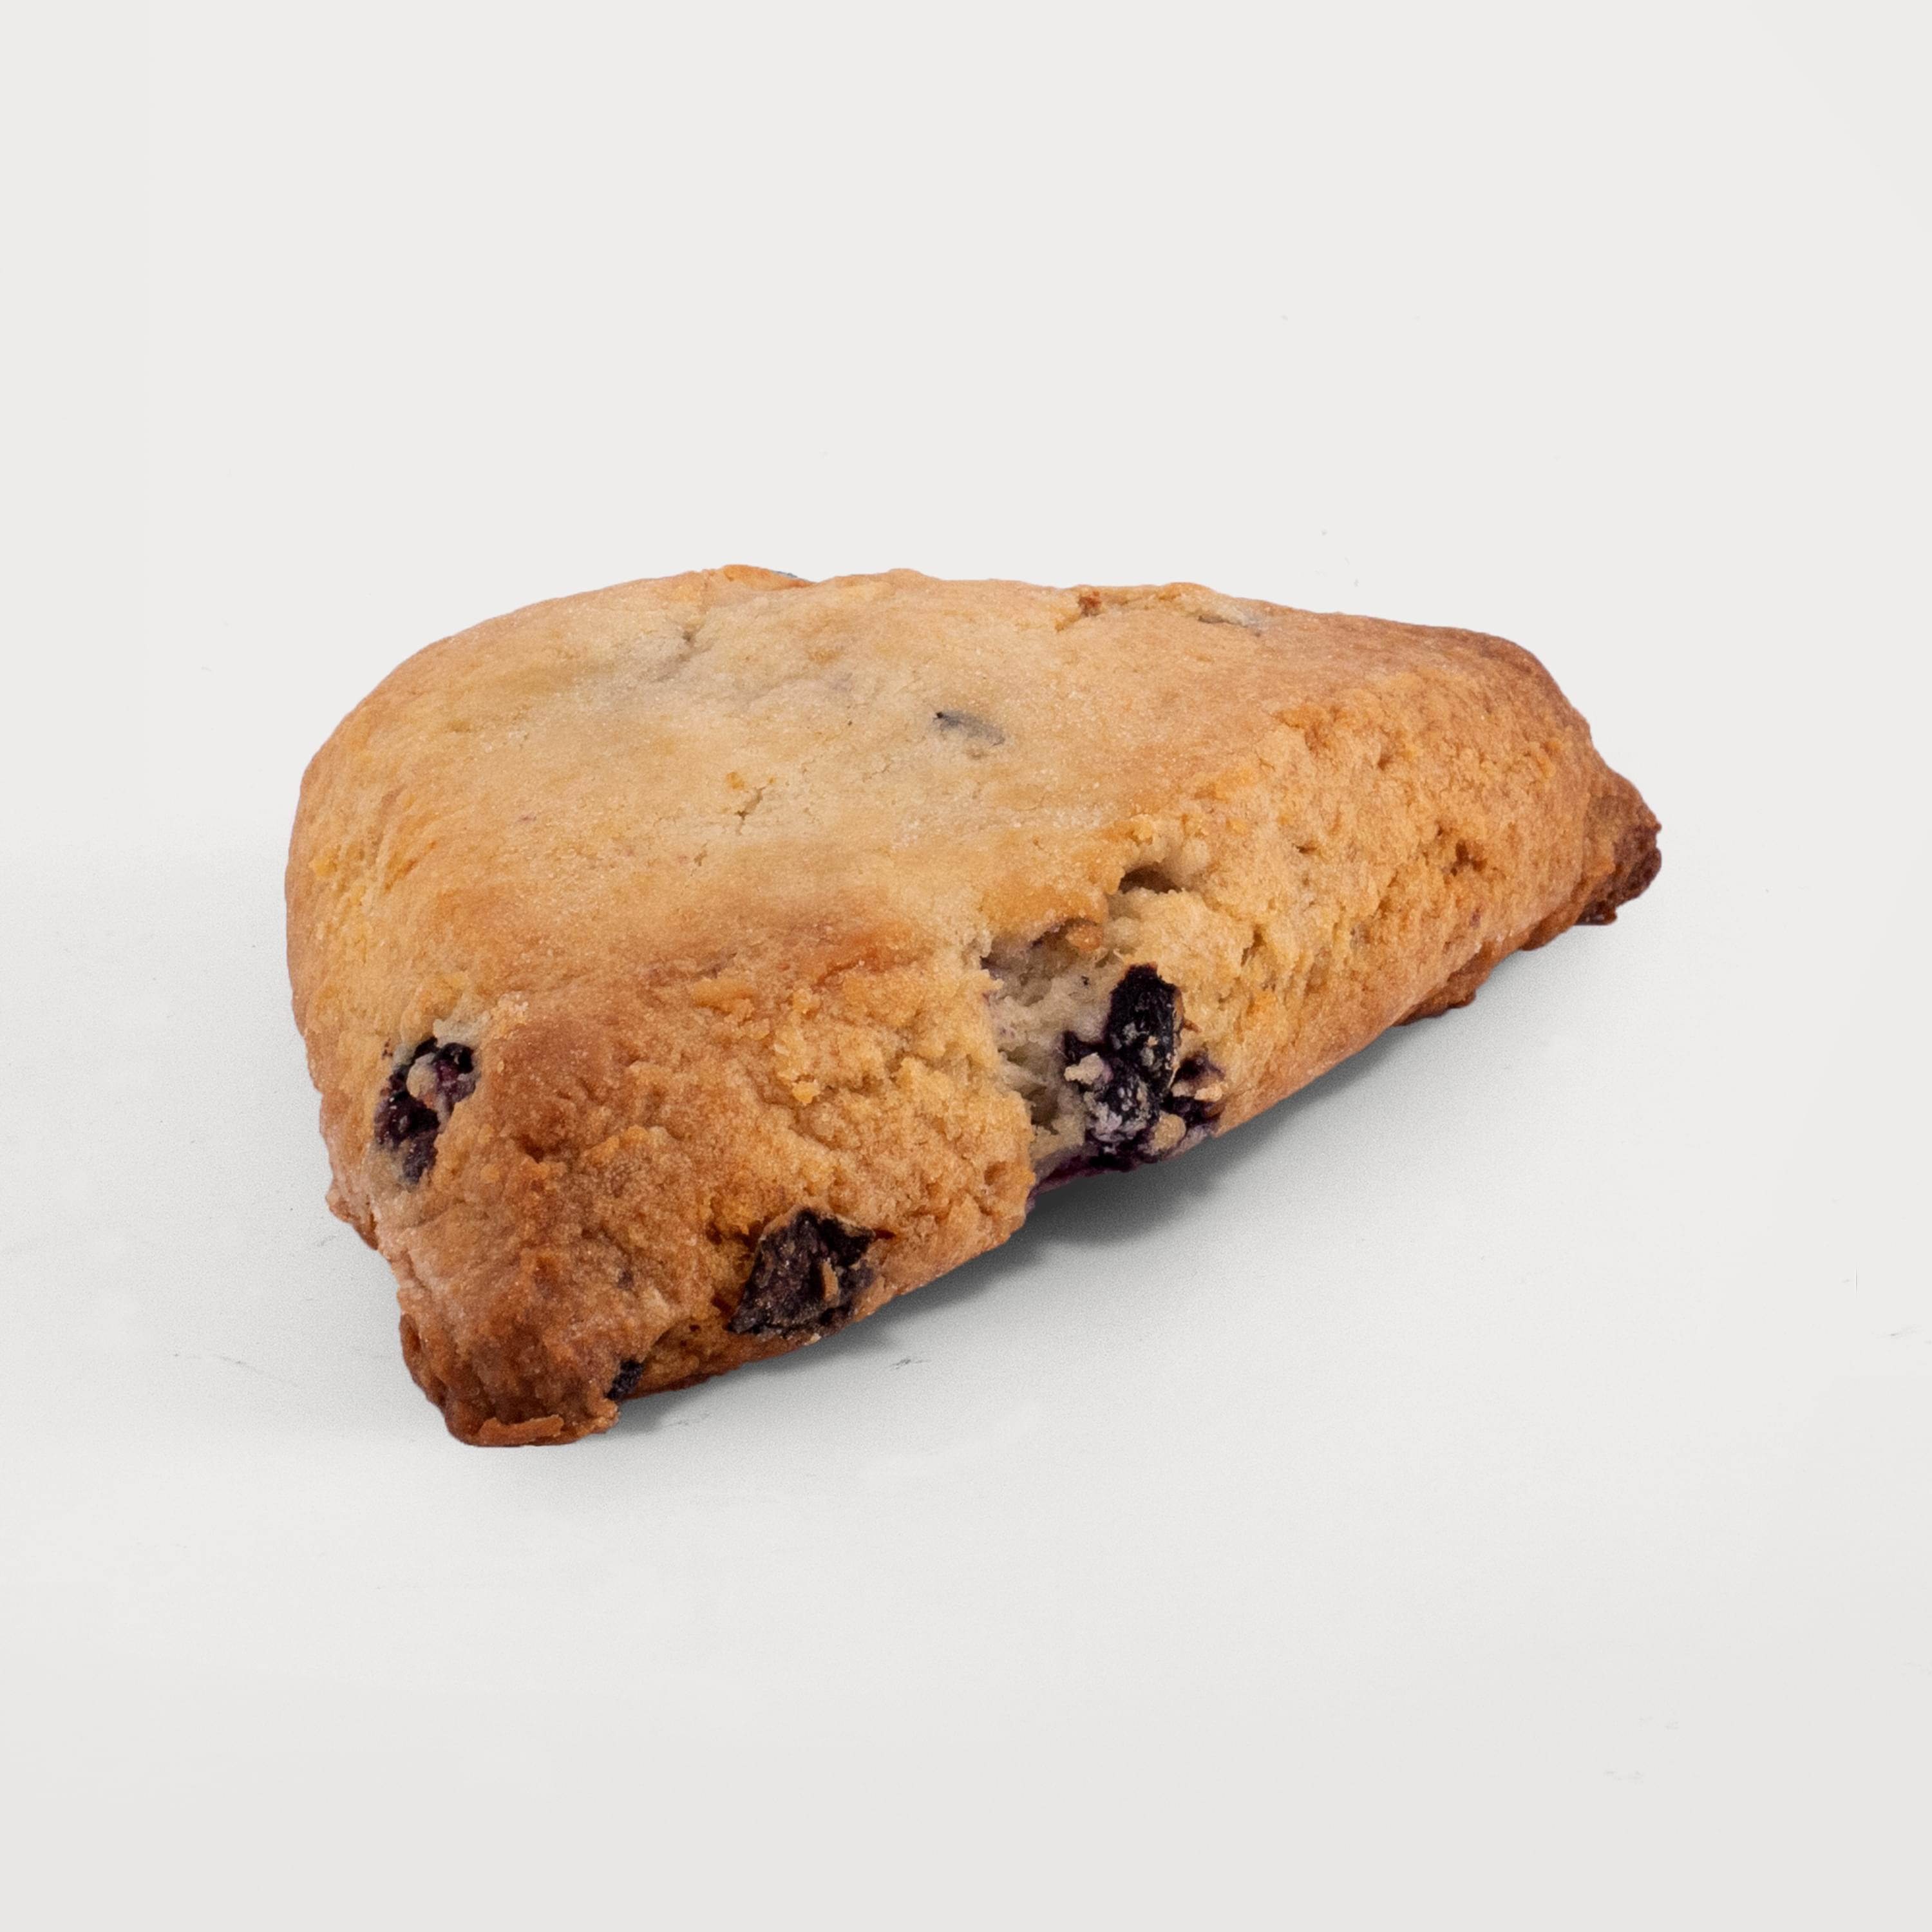 Pastry scone blueberry thumb